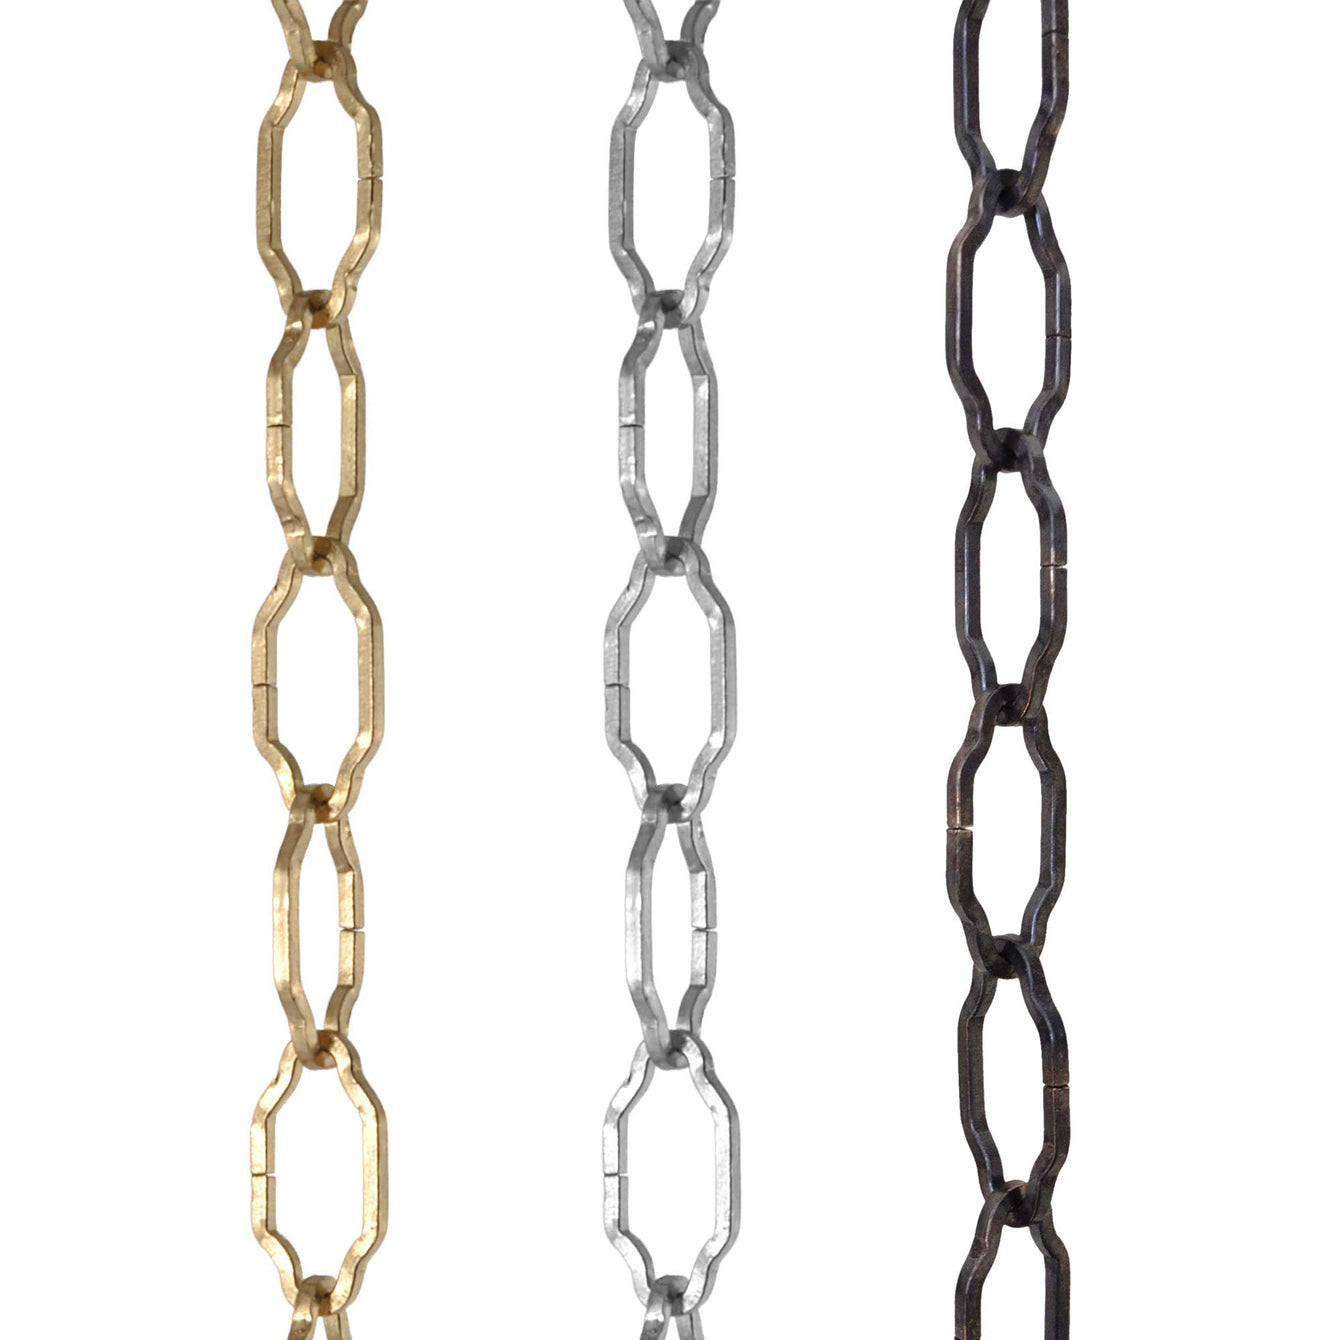 ElekTek Gothic Open Link Chain for Chandelier & Lighting 29mm x 15mm Per Linear Metre - Buy It Better Brass